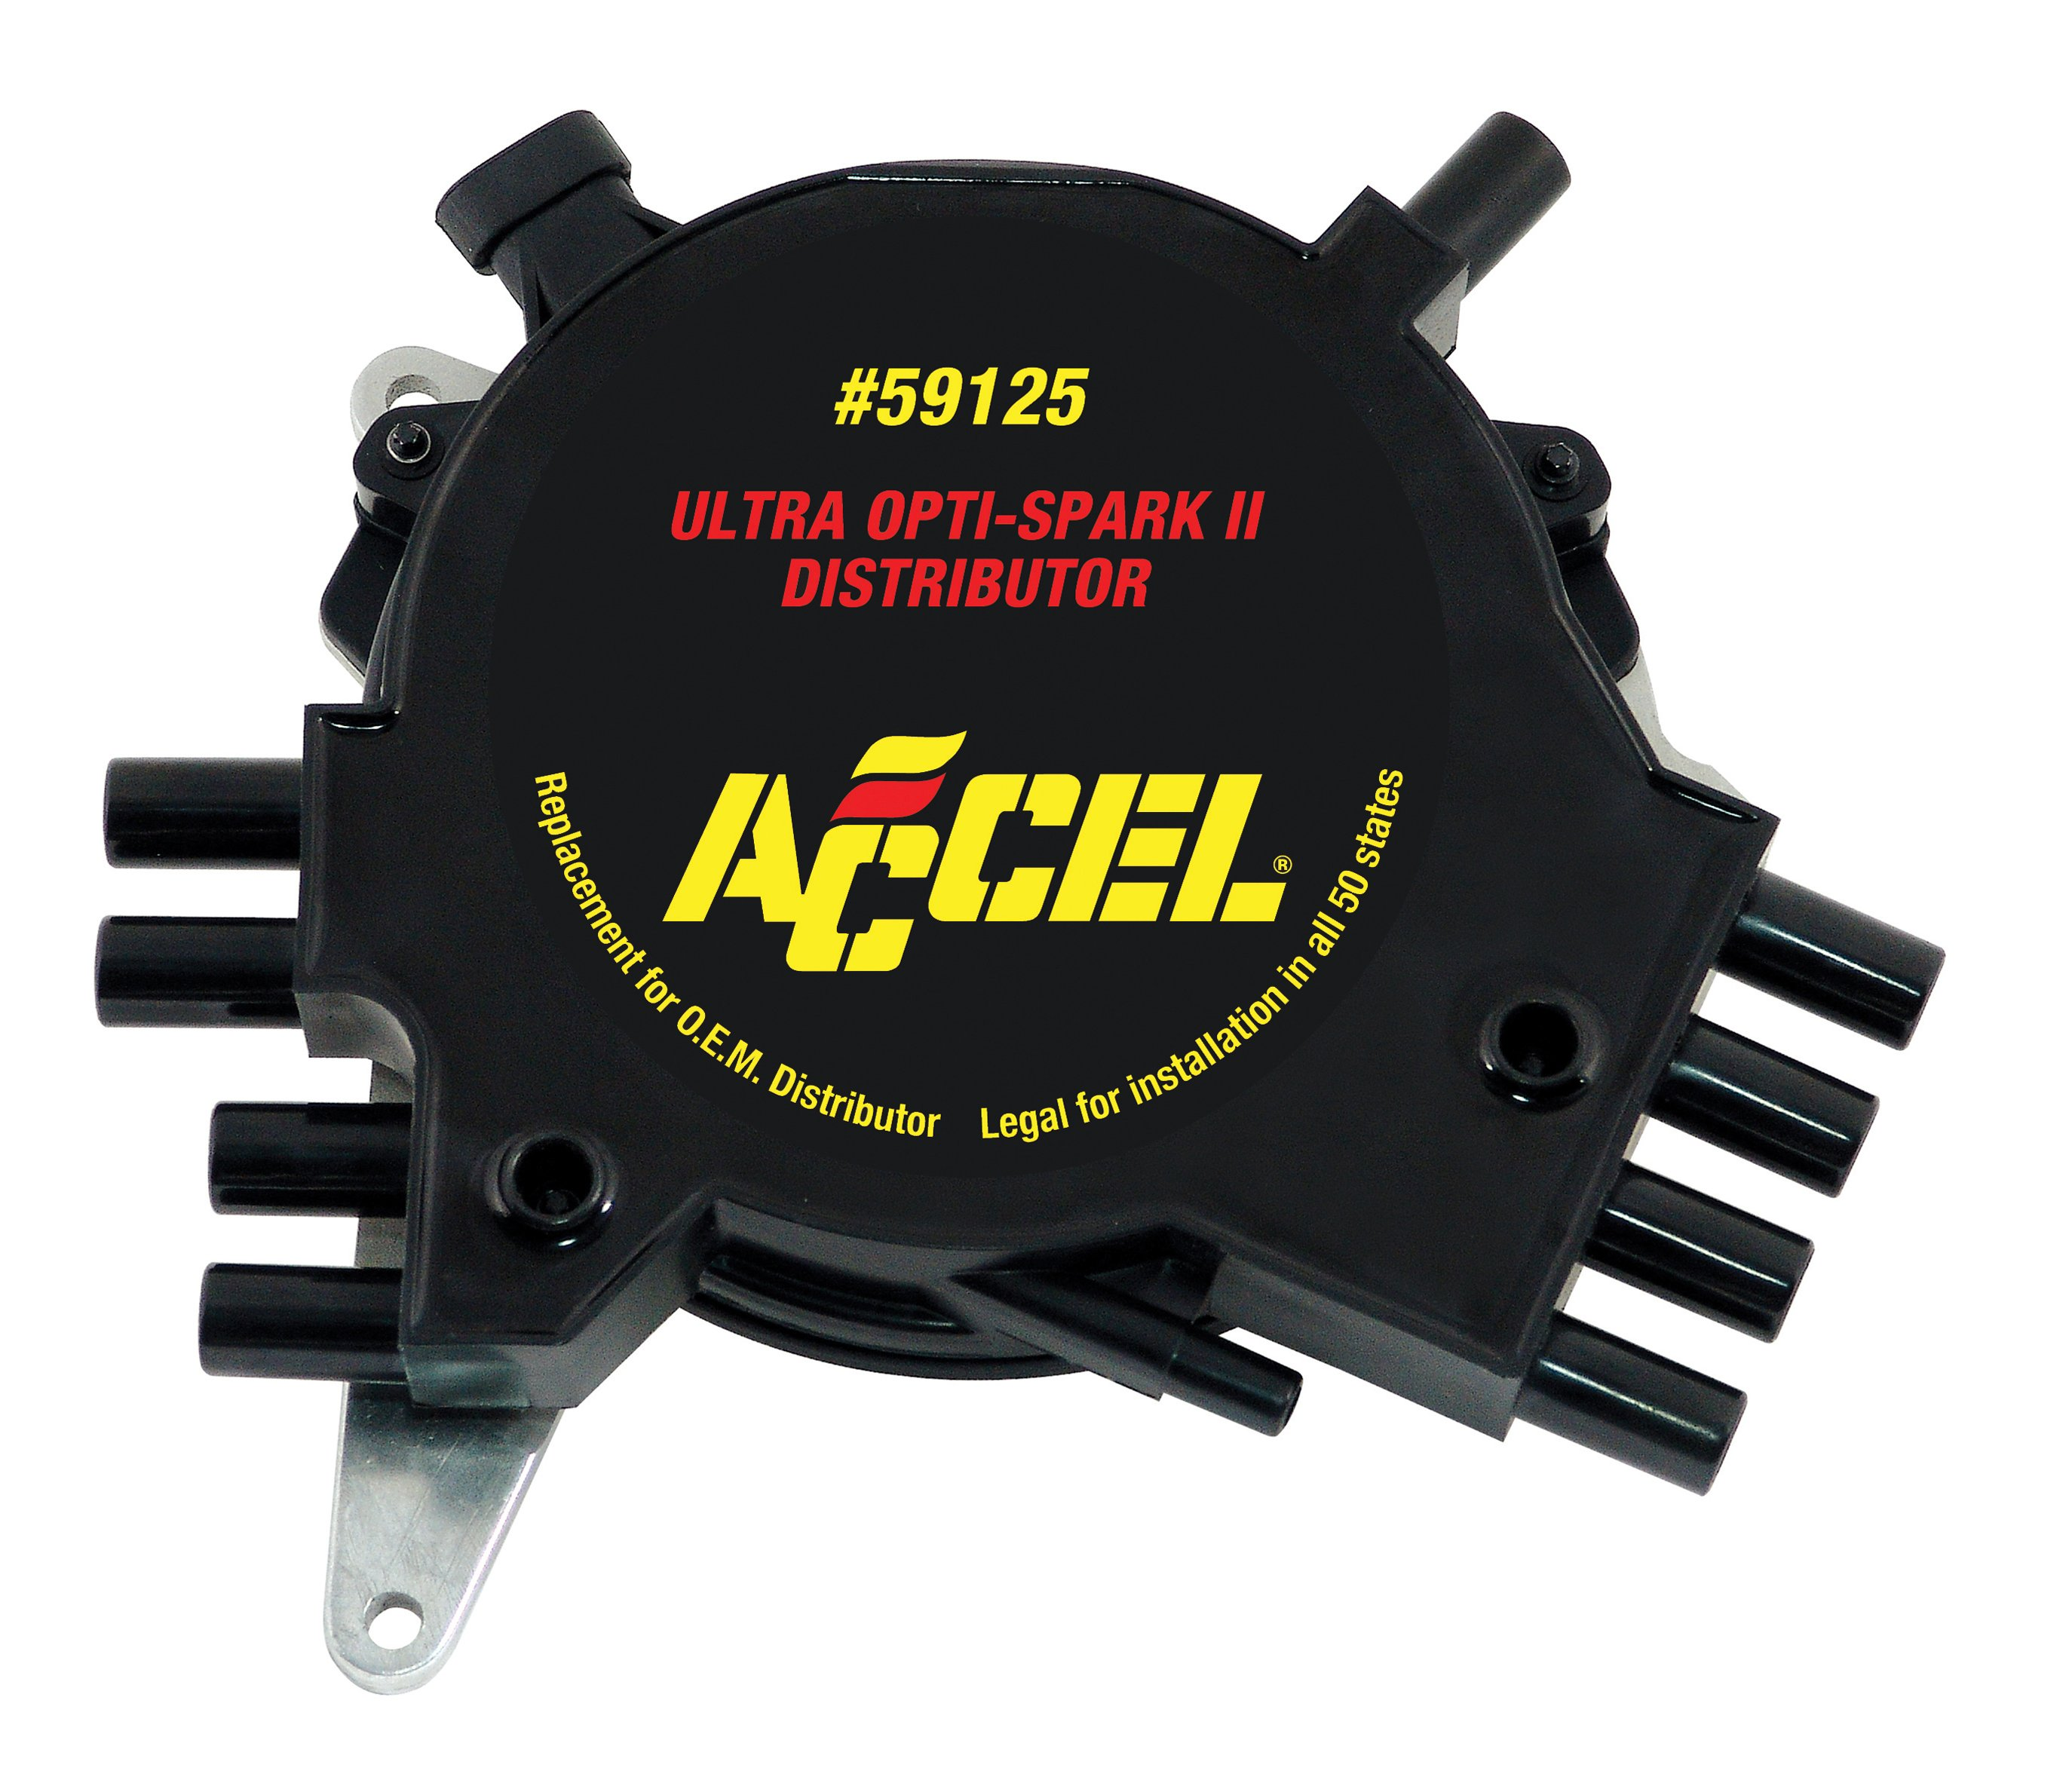 Accel Dual Point Distributor Wiring Diagram 43 Electronic Ignition Coil 59125 Manufacturer Of Coils Spark Plug Wires Chevy Hei At